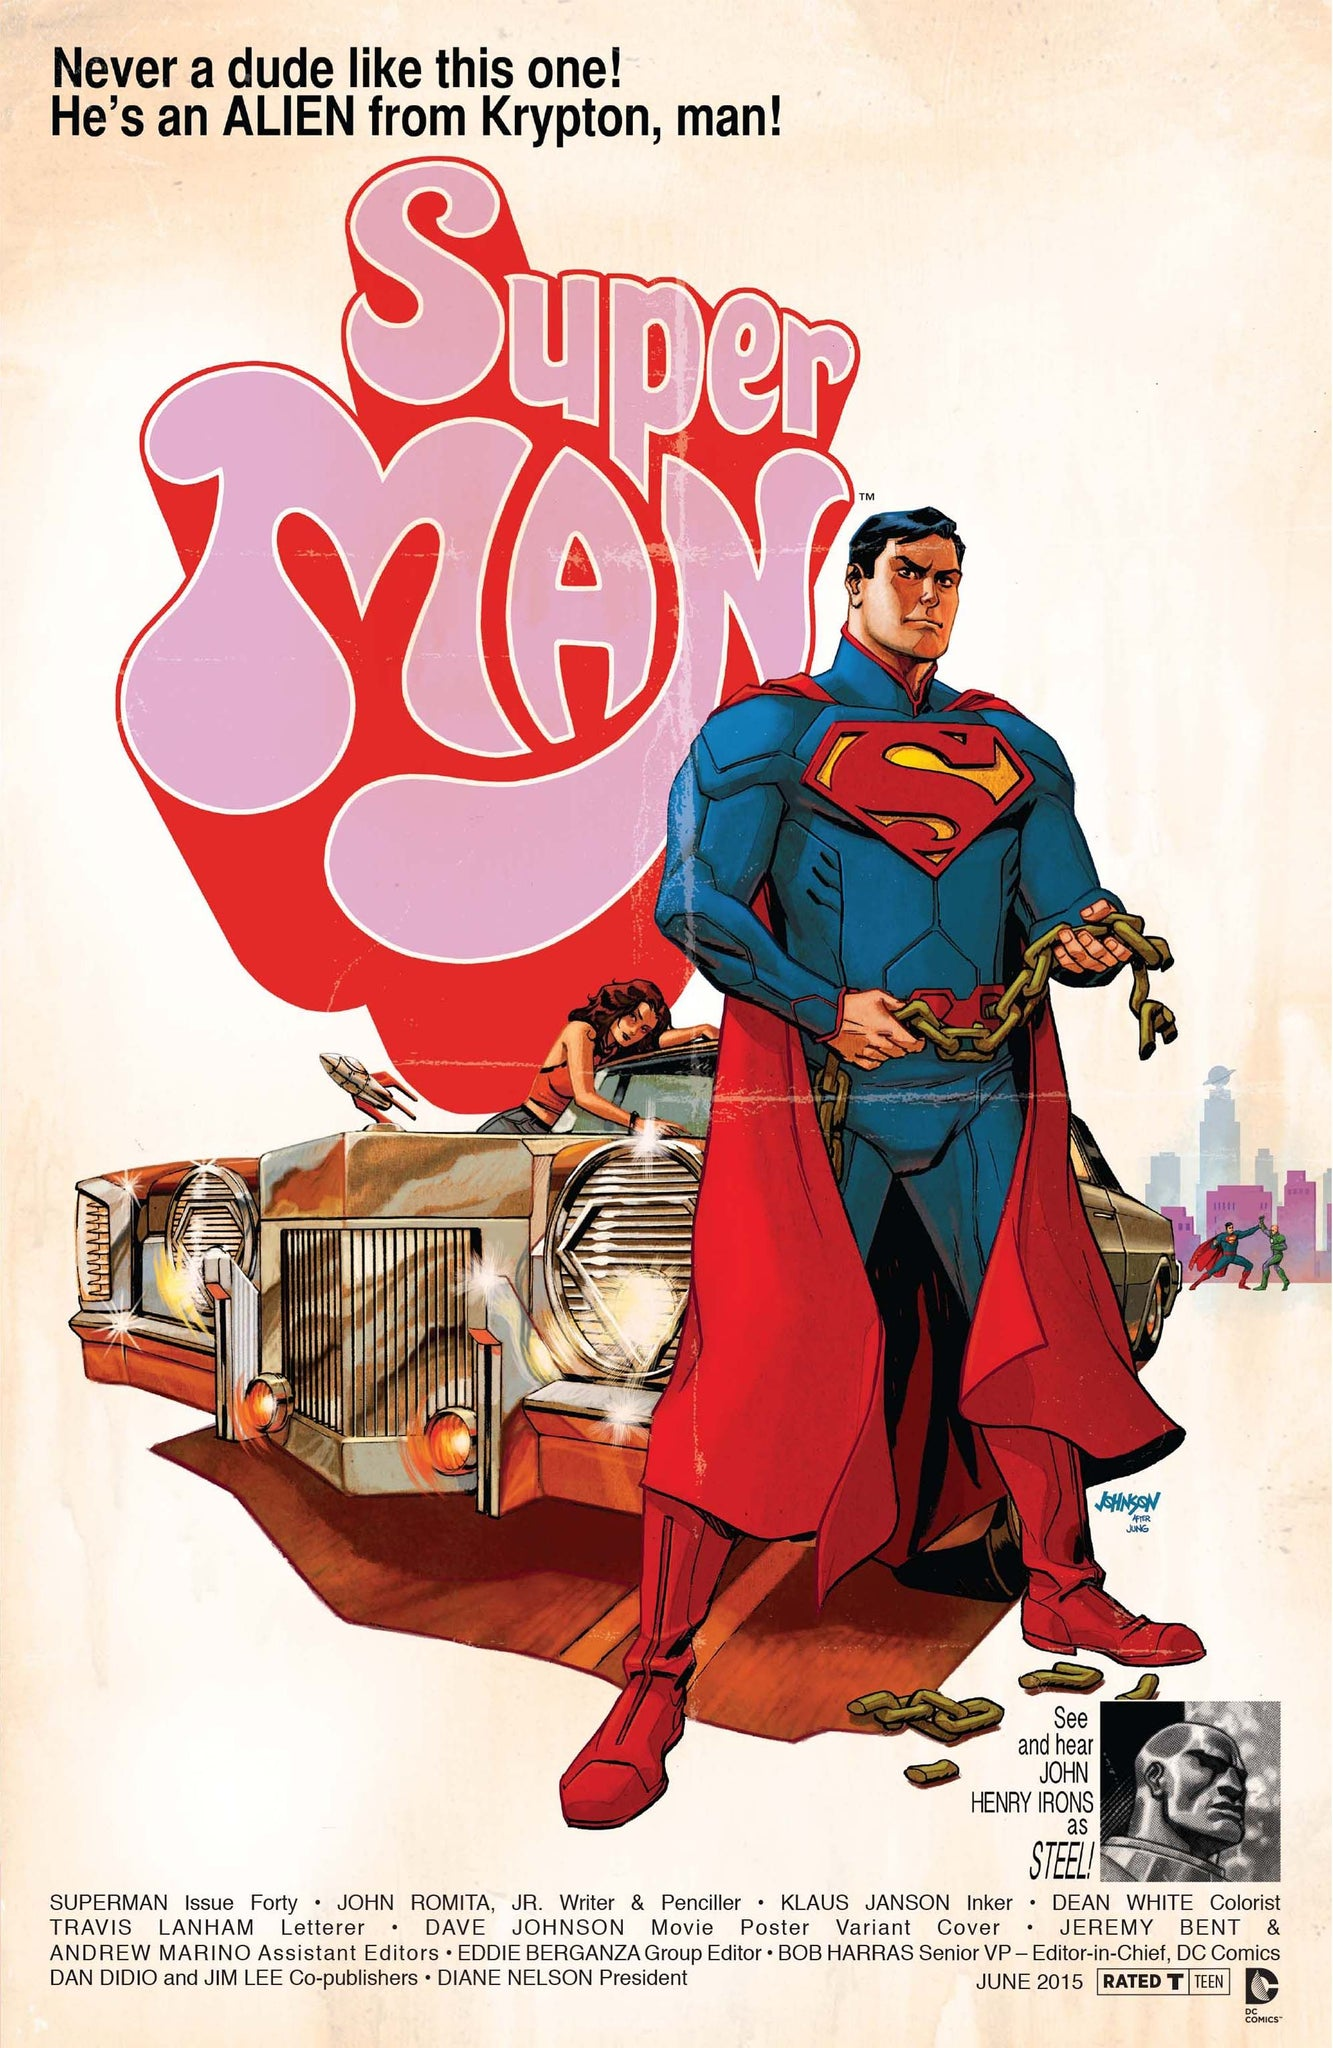 Superman (The New 52) #40 Movie Poster Cover